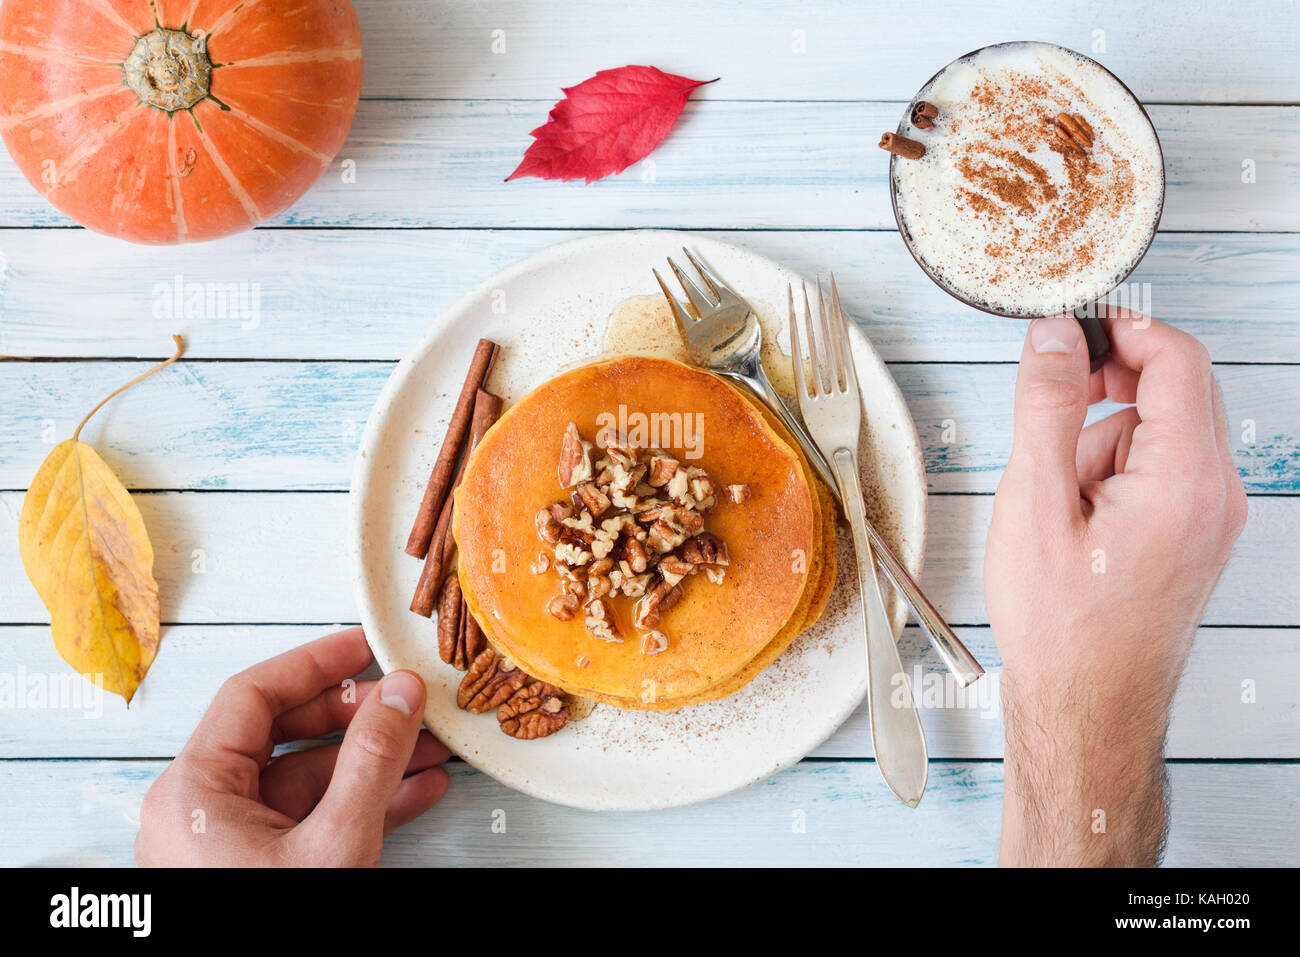 Pumpkin pancakes with pecan nuts, maple syrup, cream and cinnamon and cup of pumpkin spice latte. Person eating - Stock Image